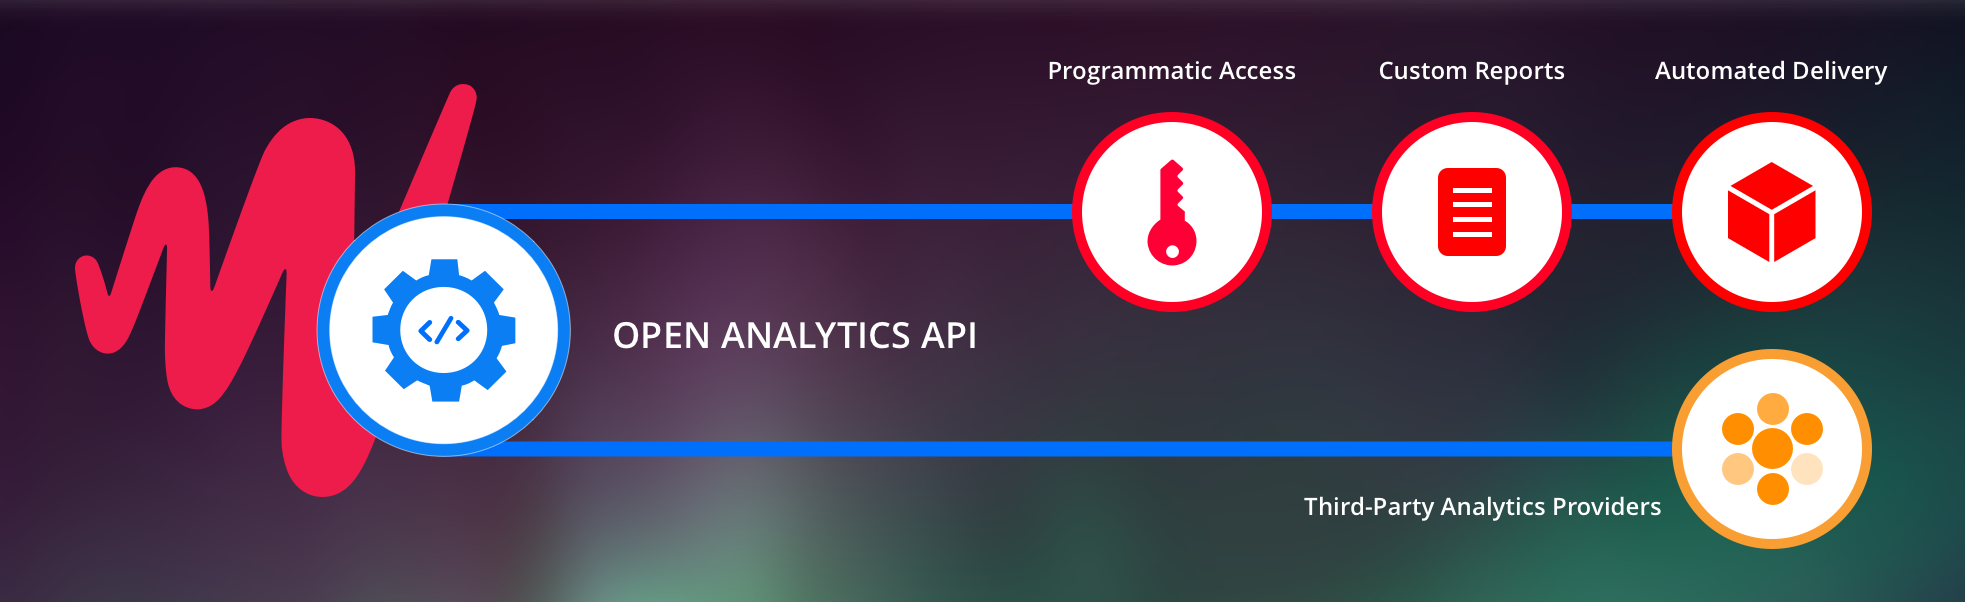 JW Player Analytics API Endpoint - Programmatic Reporting | JW Player